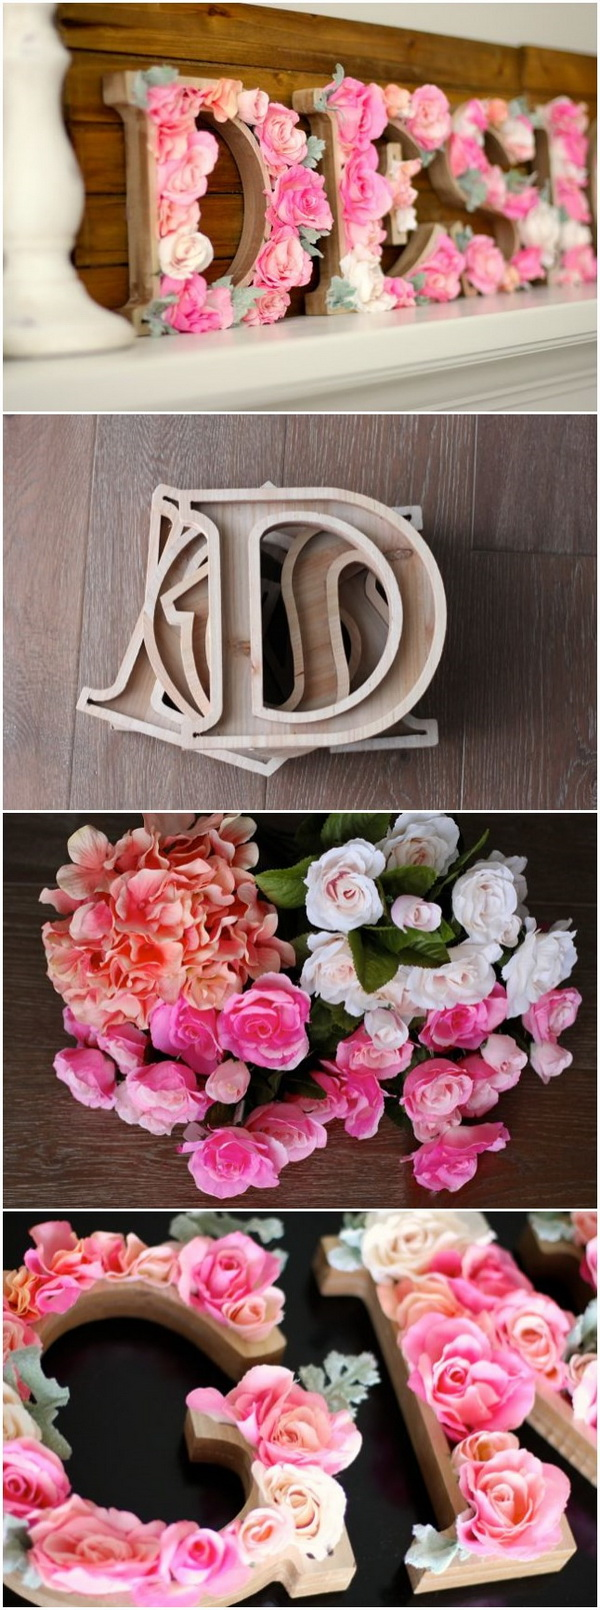 DIY Rustic Letters With Flowers: A Wood Sign With Flowers That Says DESIGN!  It